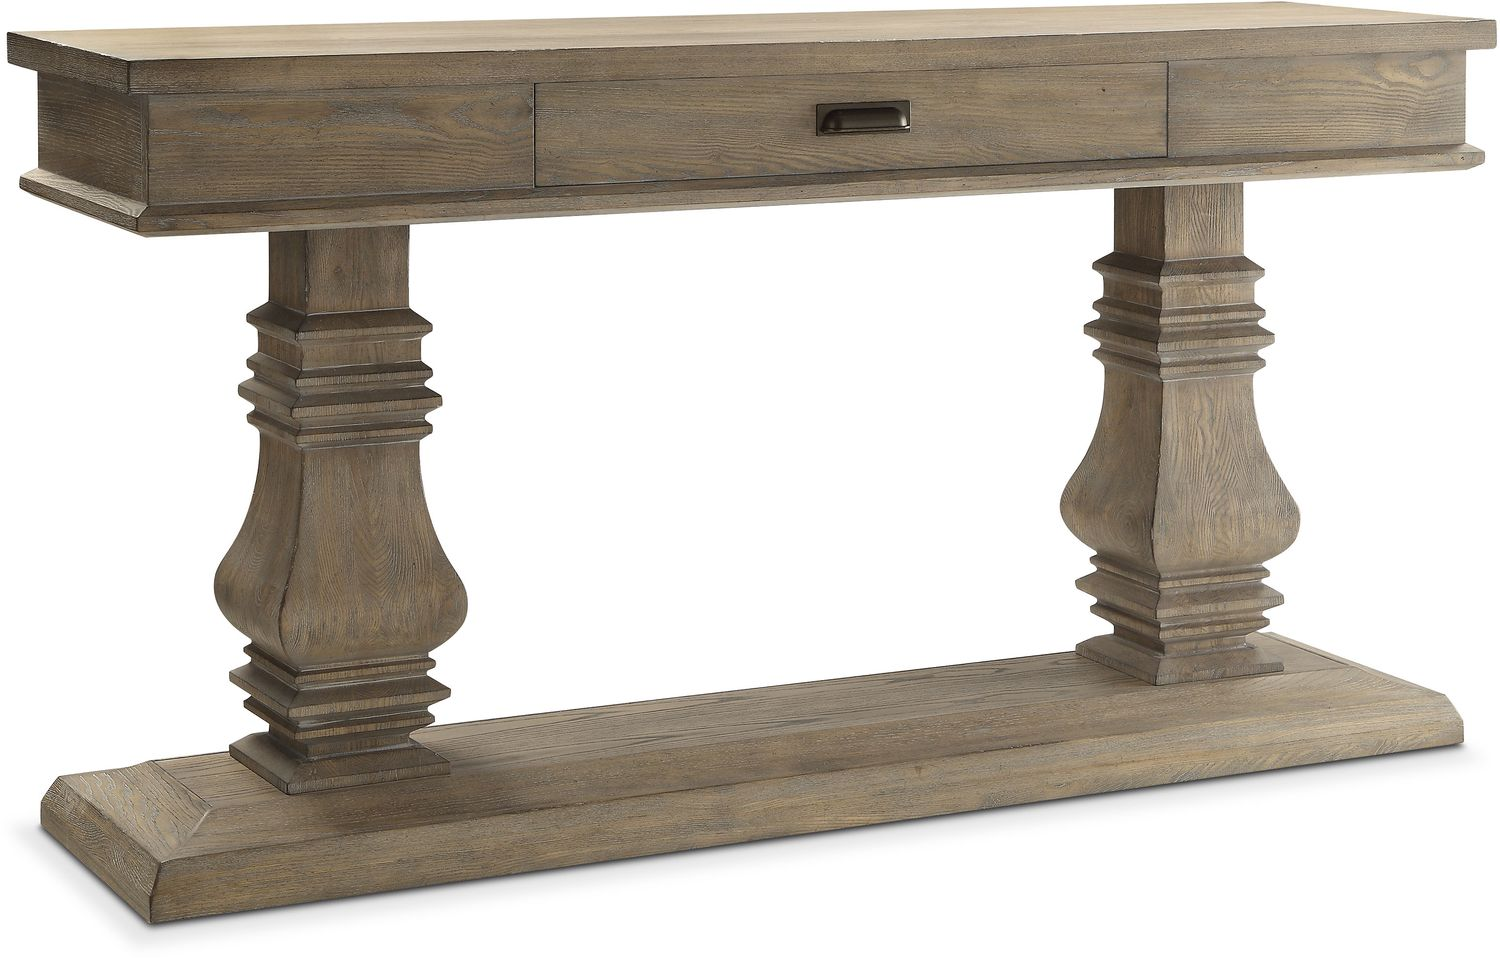 Dining Room Furniture - Lancaster Double Pedestal Sideboard